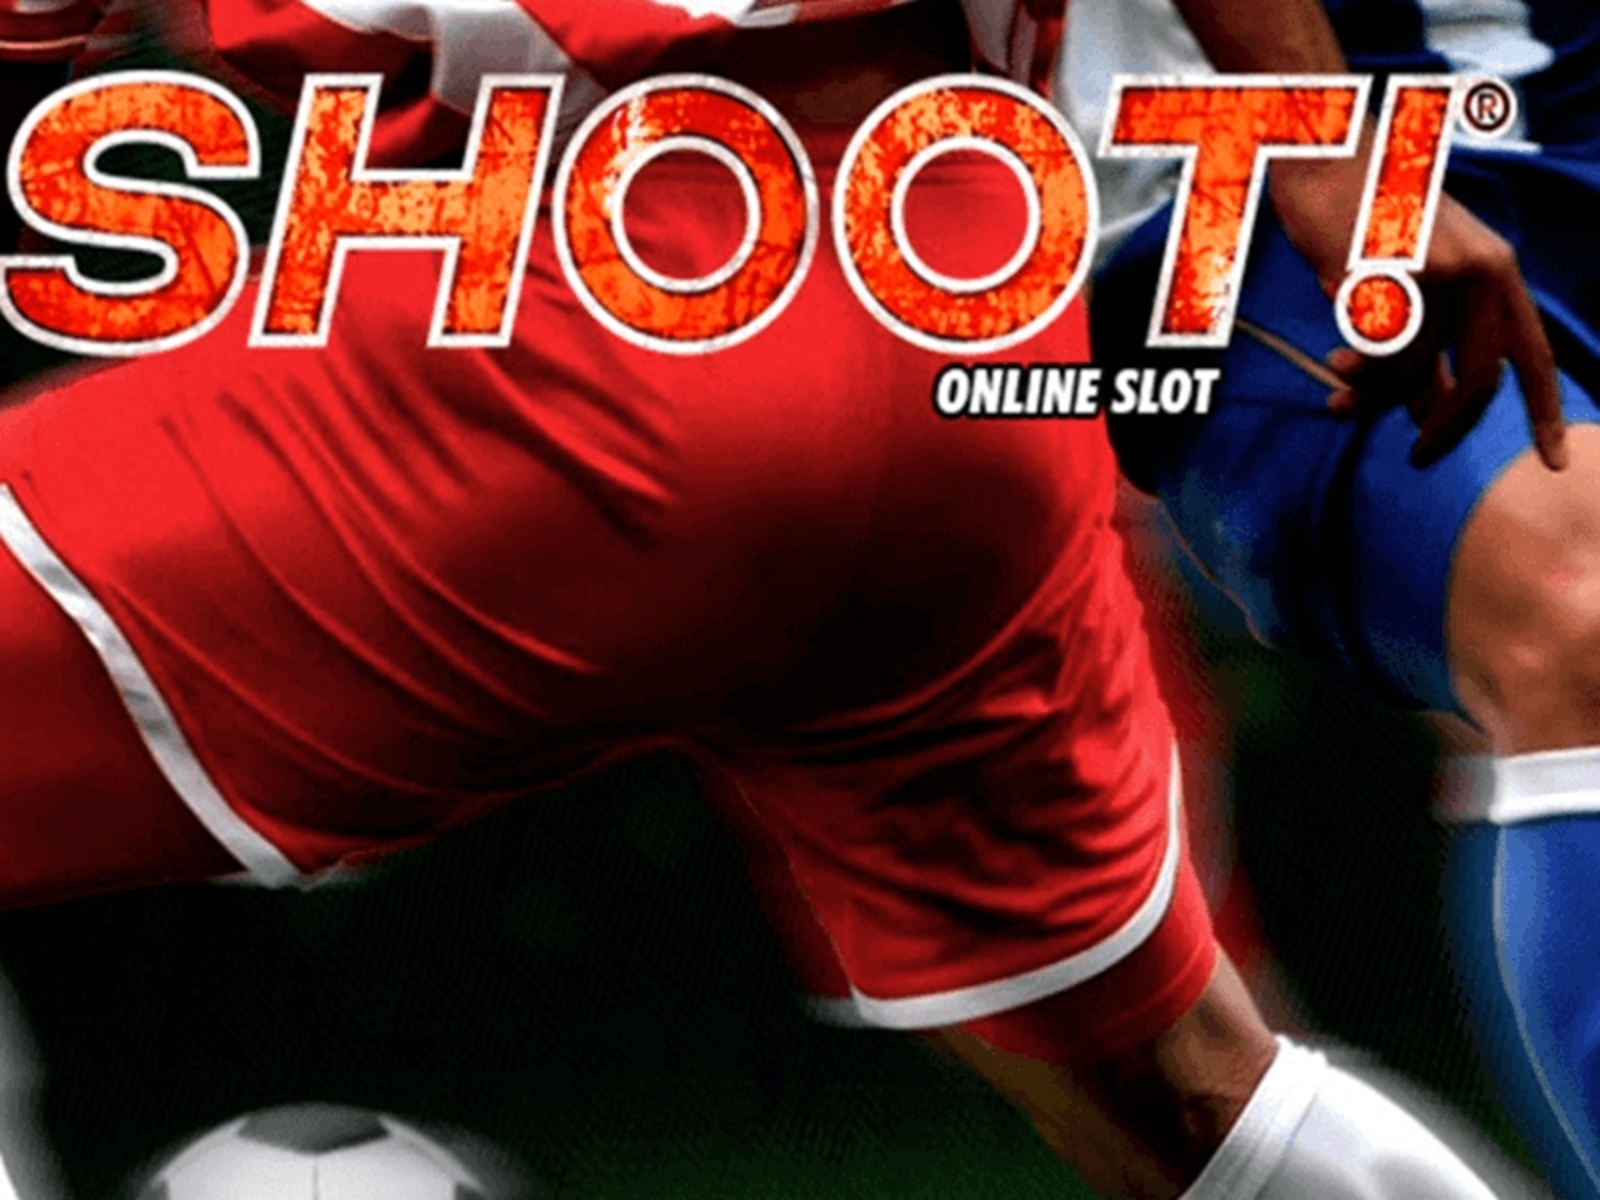 The Shoot! Online Slot Demo Game by Microgaming